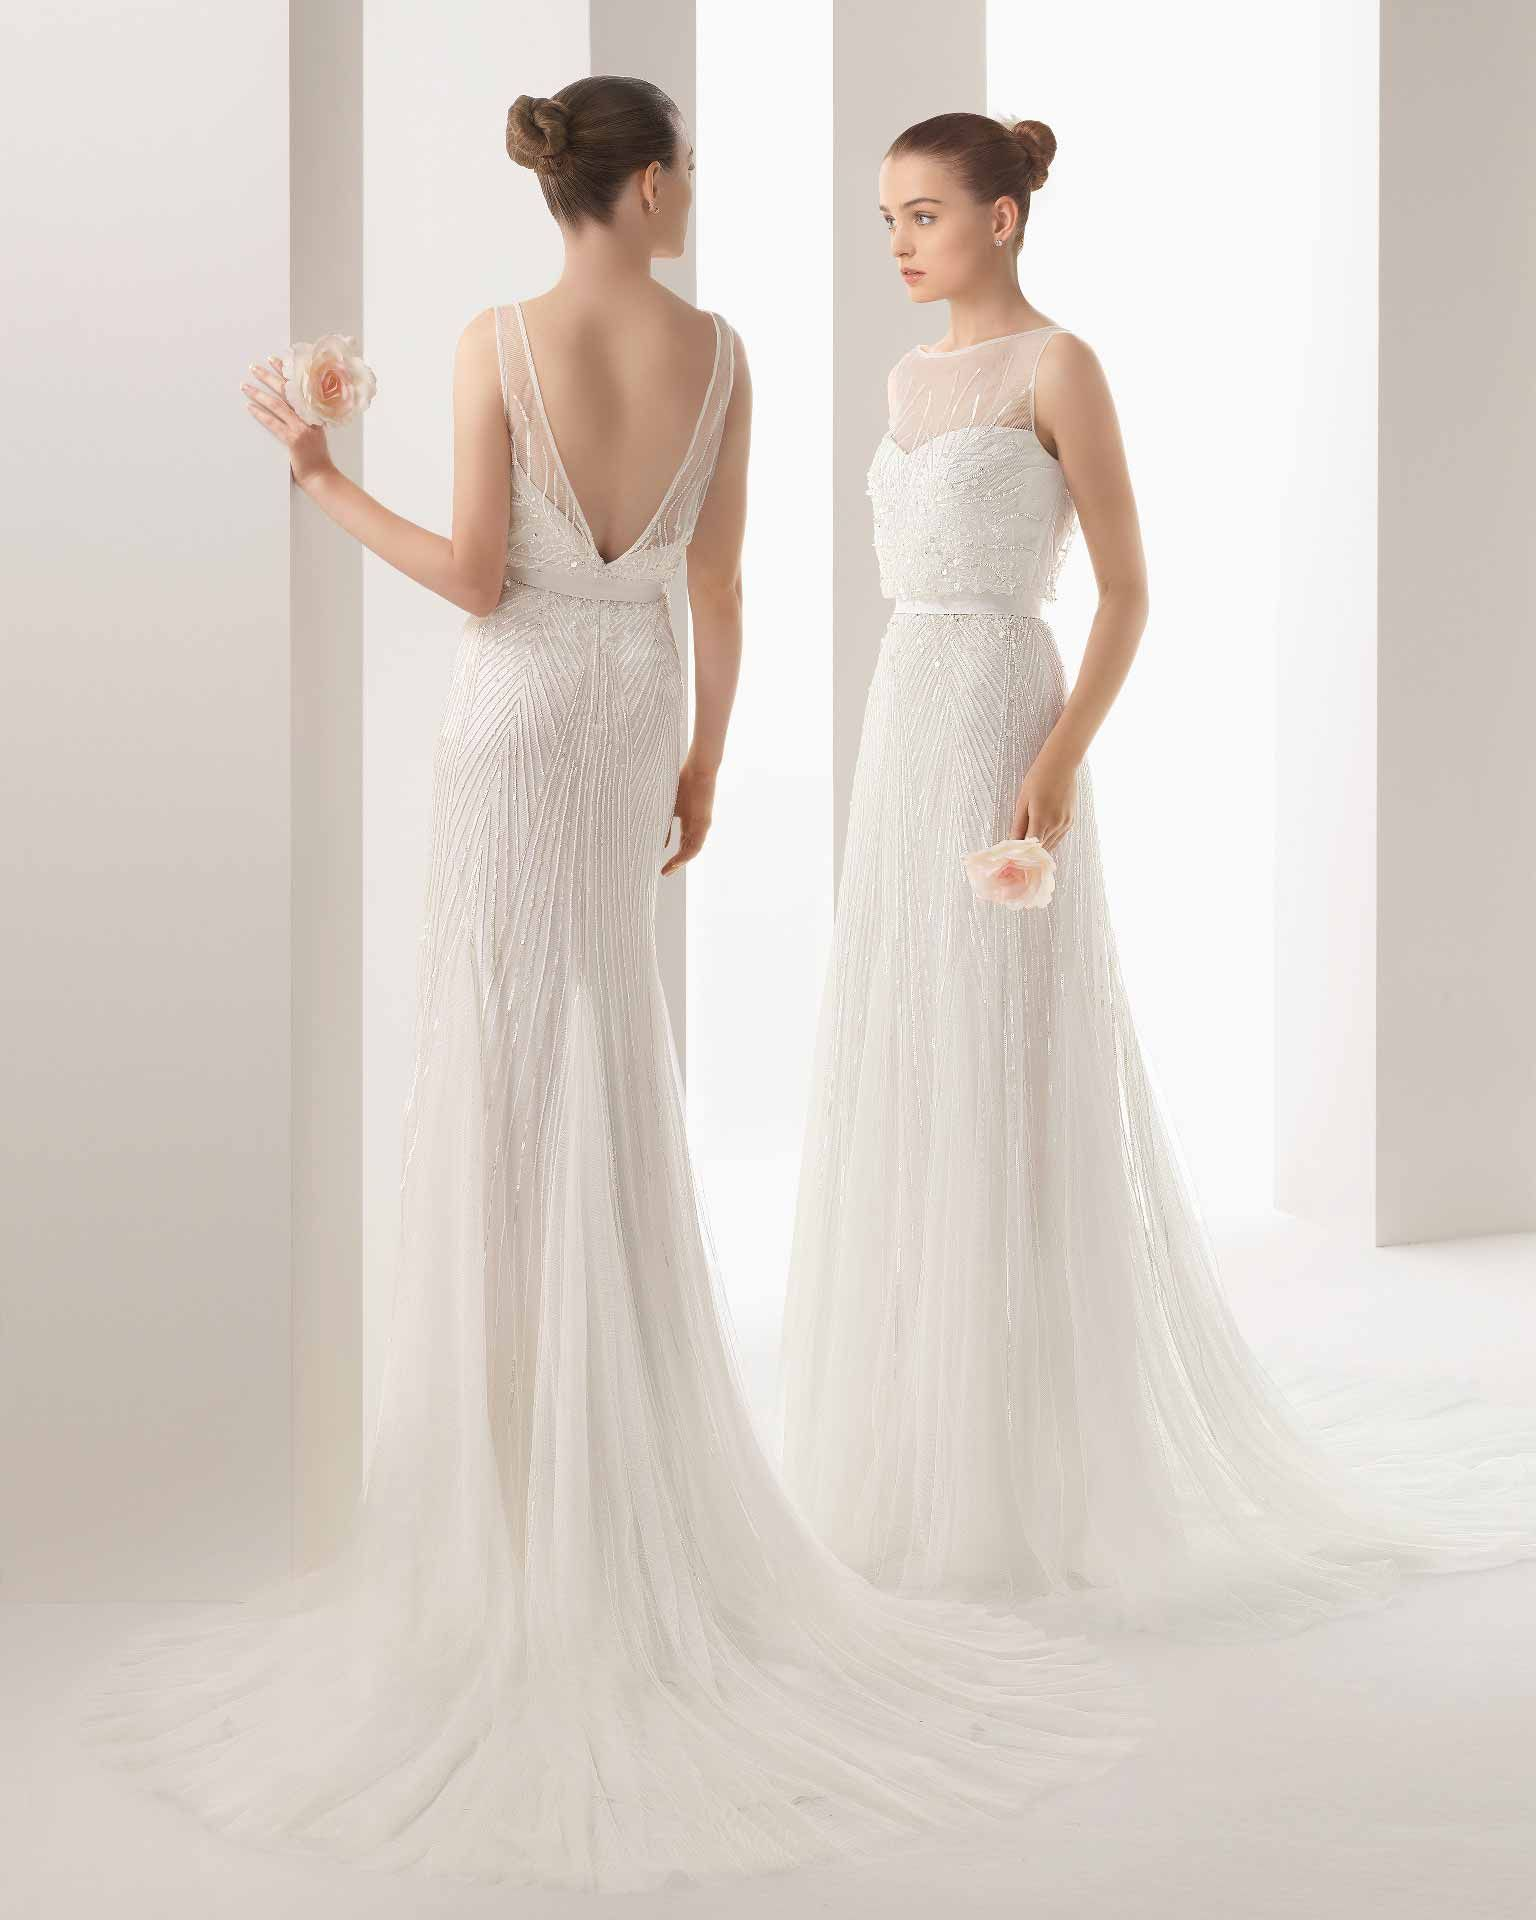 Vera wang wedding dress rental  Vera Wang  Hayden  for sale or rent online Save serious money on